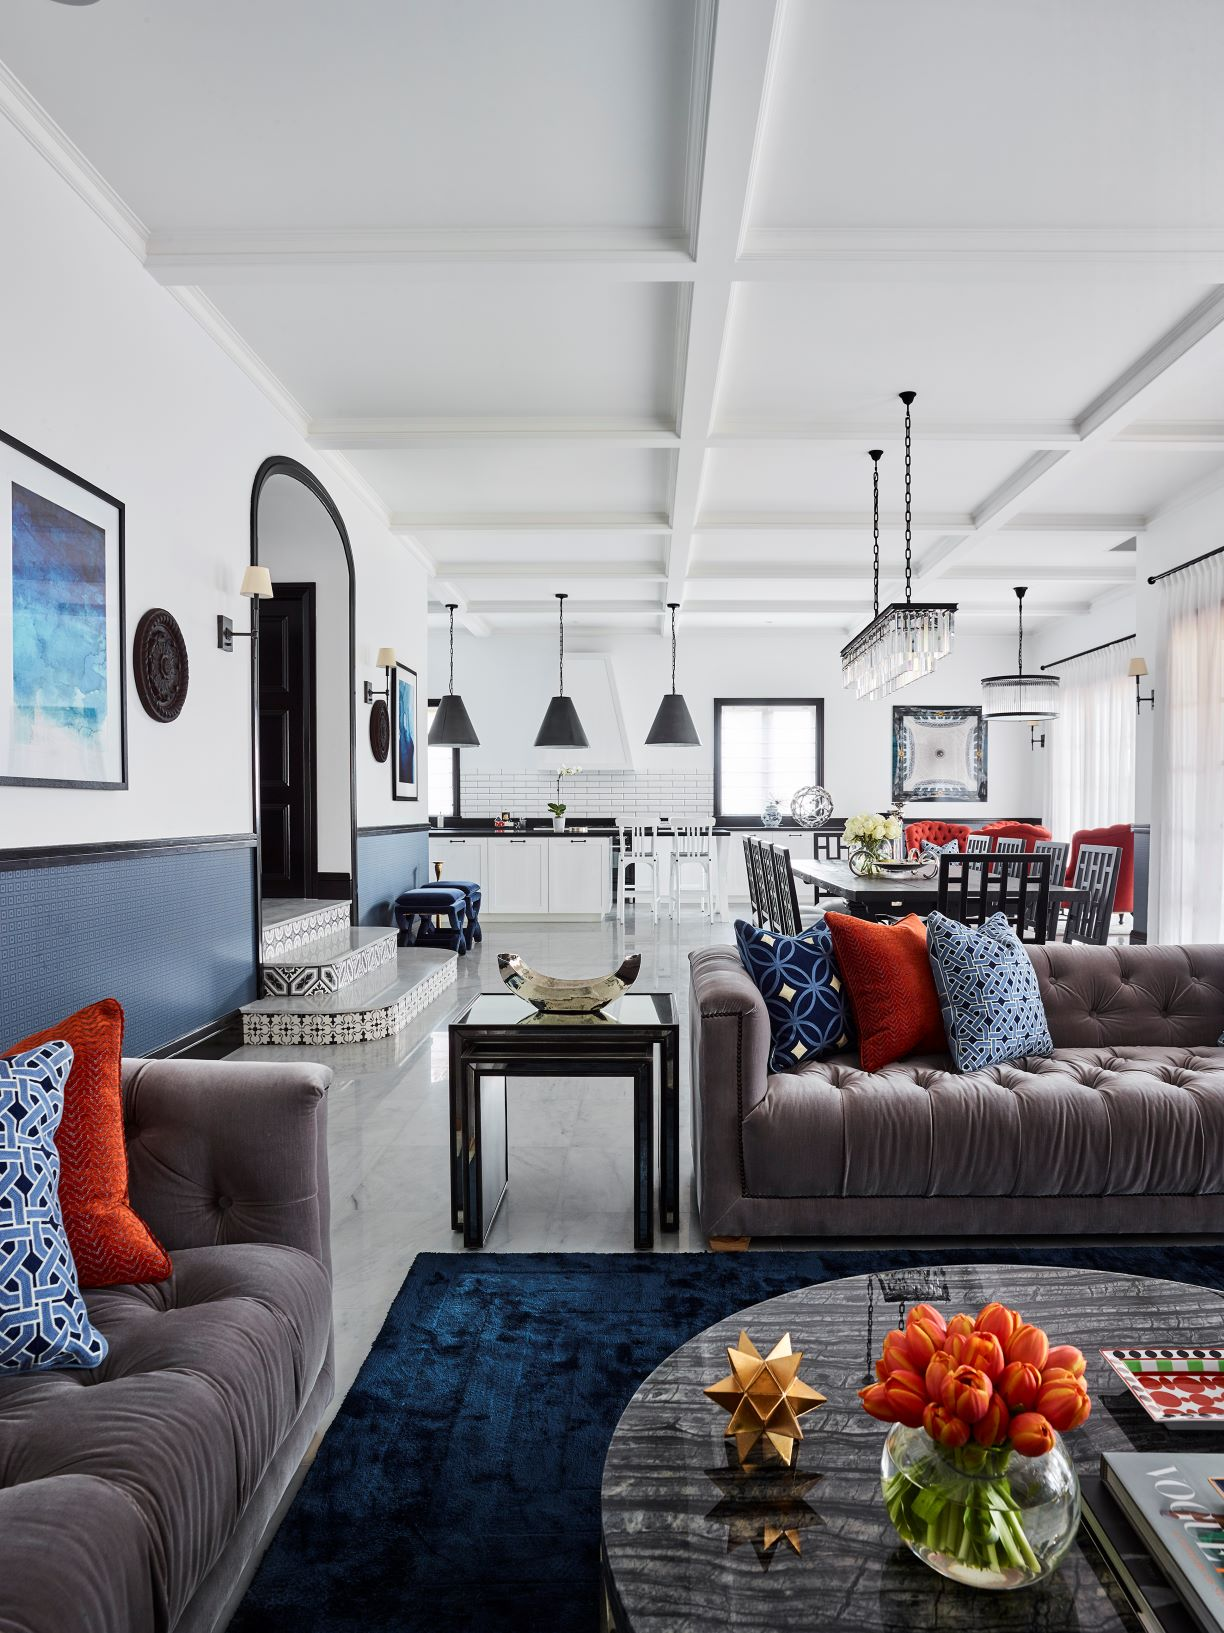 Interior Design Trends 2021   Making your Home Beautiful